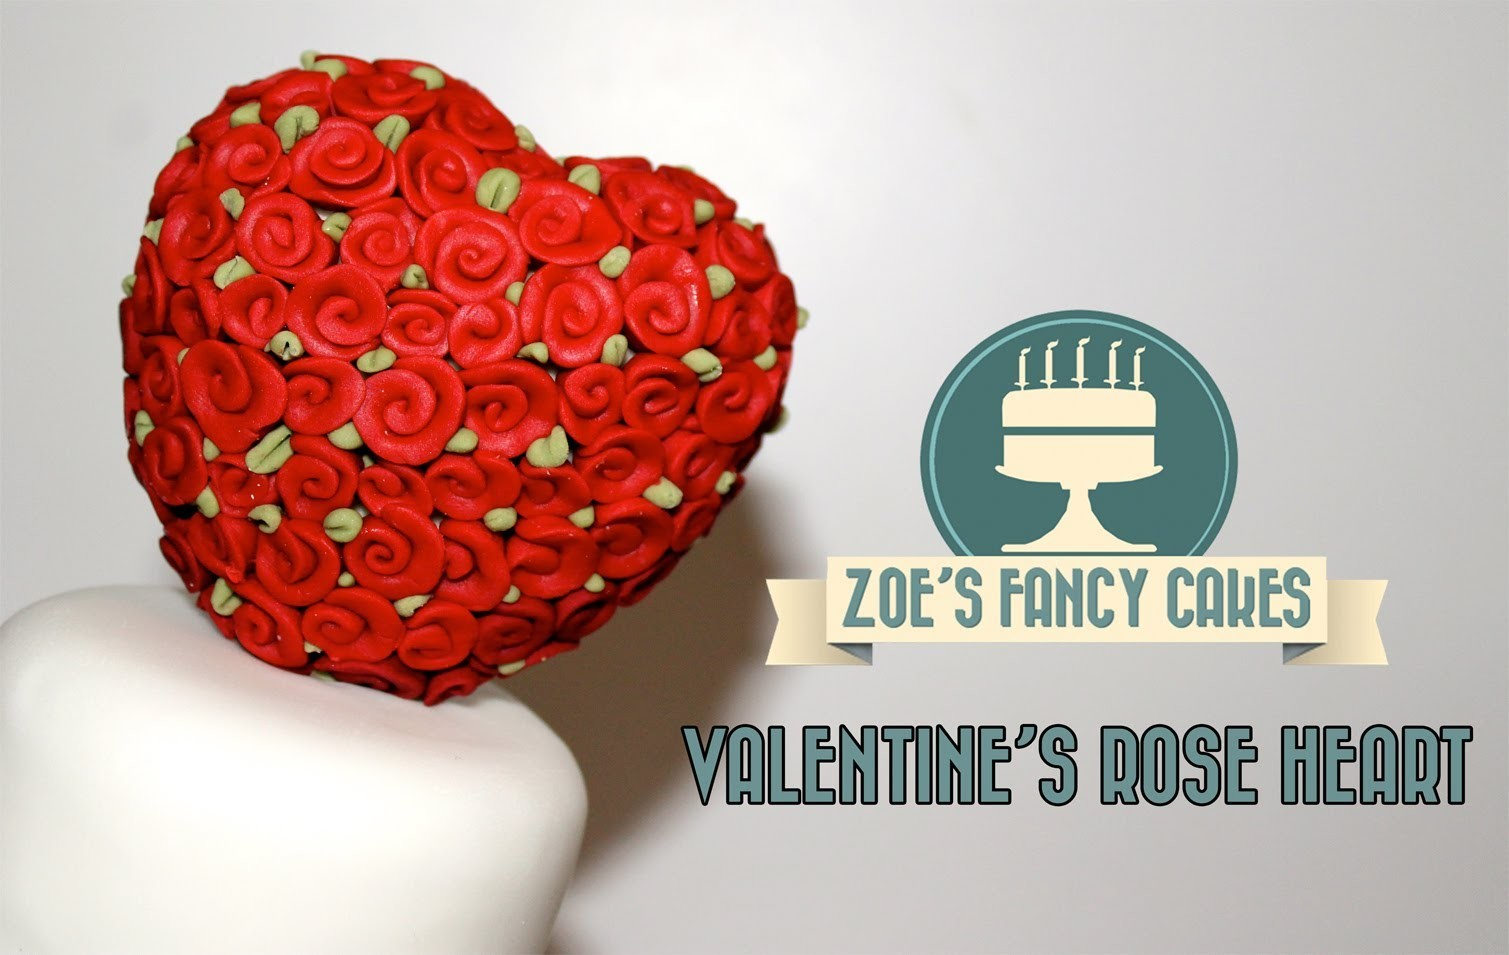 How to make a valentines rose heart cake decorating and icing valentines How To Tutorial